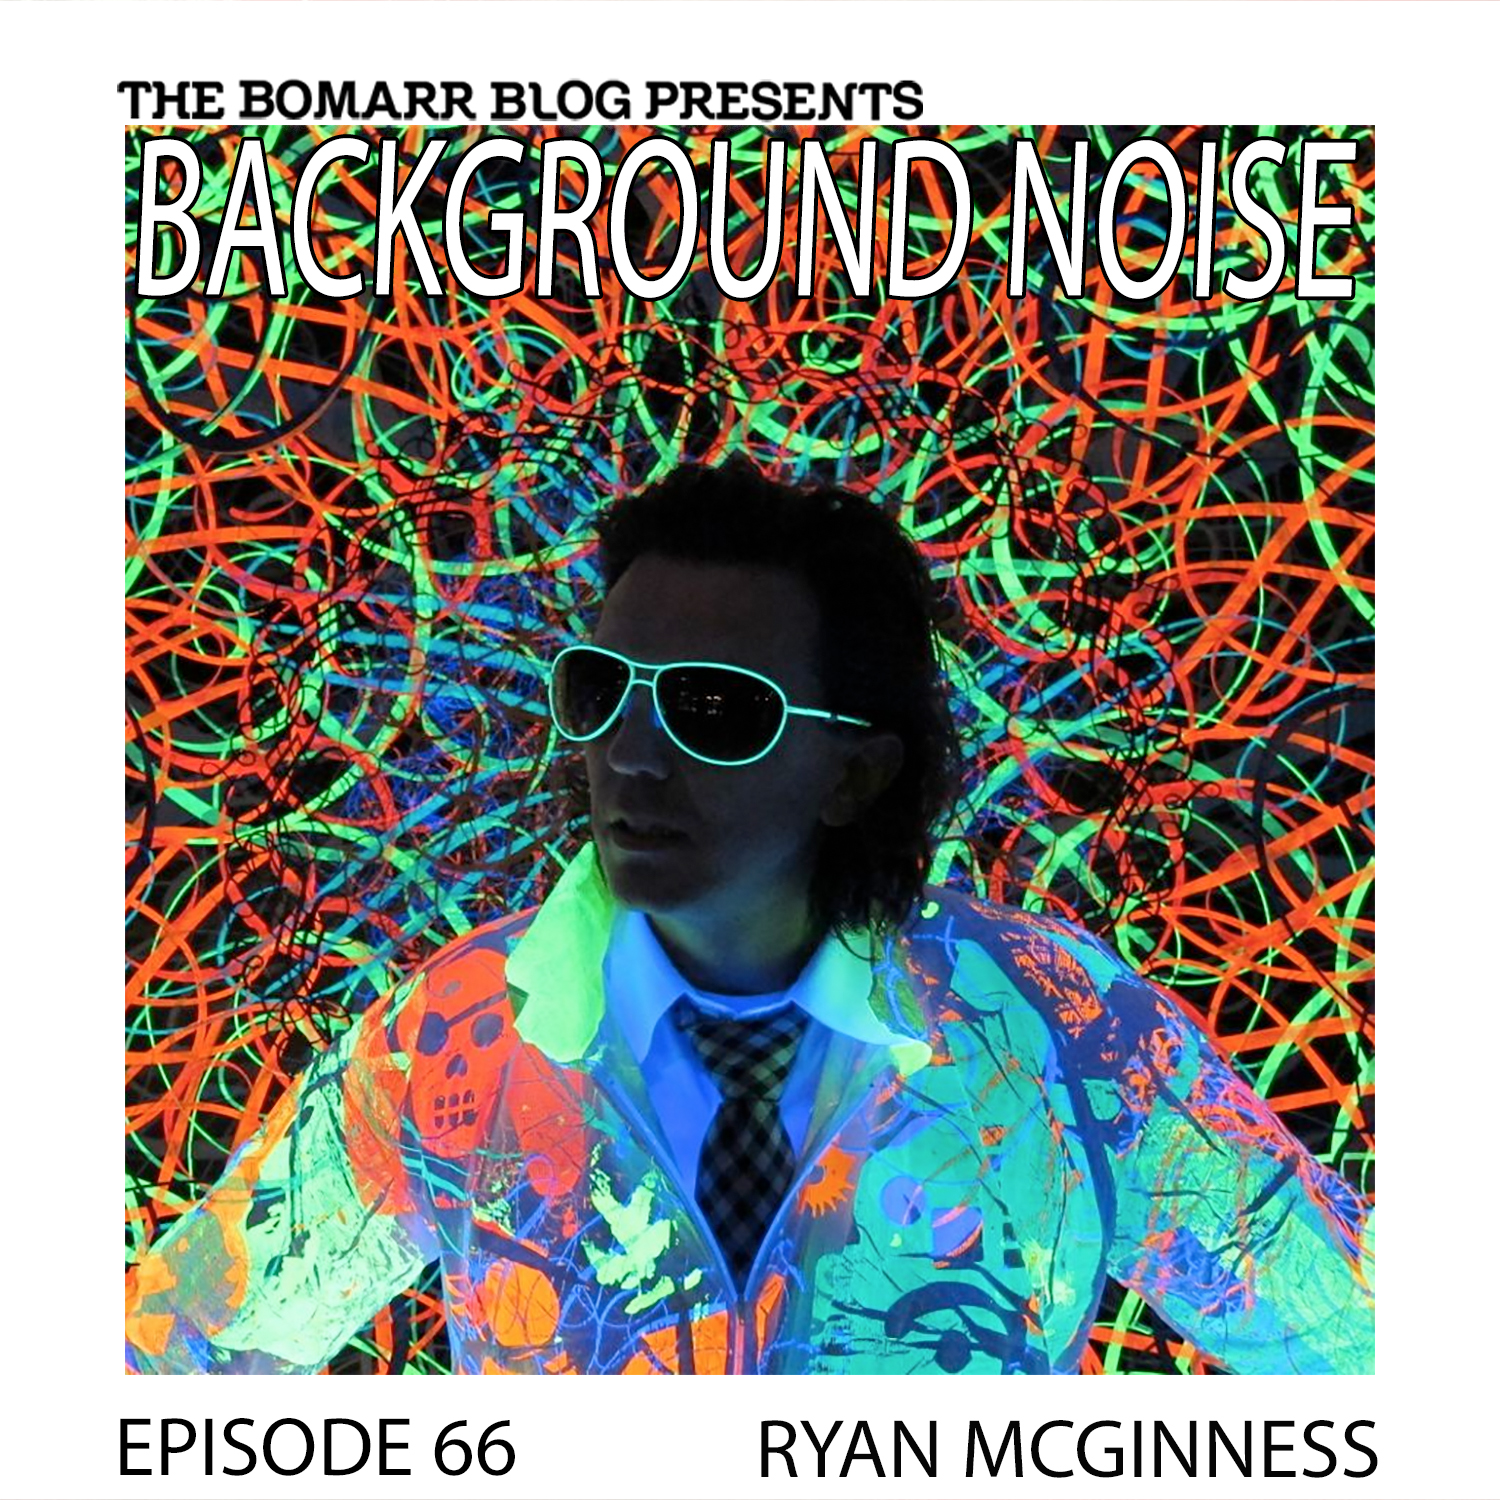 THE BACKGROUND NOISE PODCAST SERIES FOCUSES ON THE MUSIC THAT ARTISTS LISTEN TO WHEN THEY WORK, WHAT MUSIC INSPIRES THEM, OR JUST MUSIC THEY LIKE. THIS WEEK, IN EPISODE 66, THE FOCUS IS ON ARTIST RYAN MCGINNESS